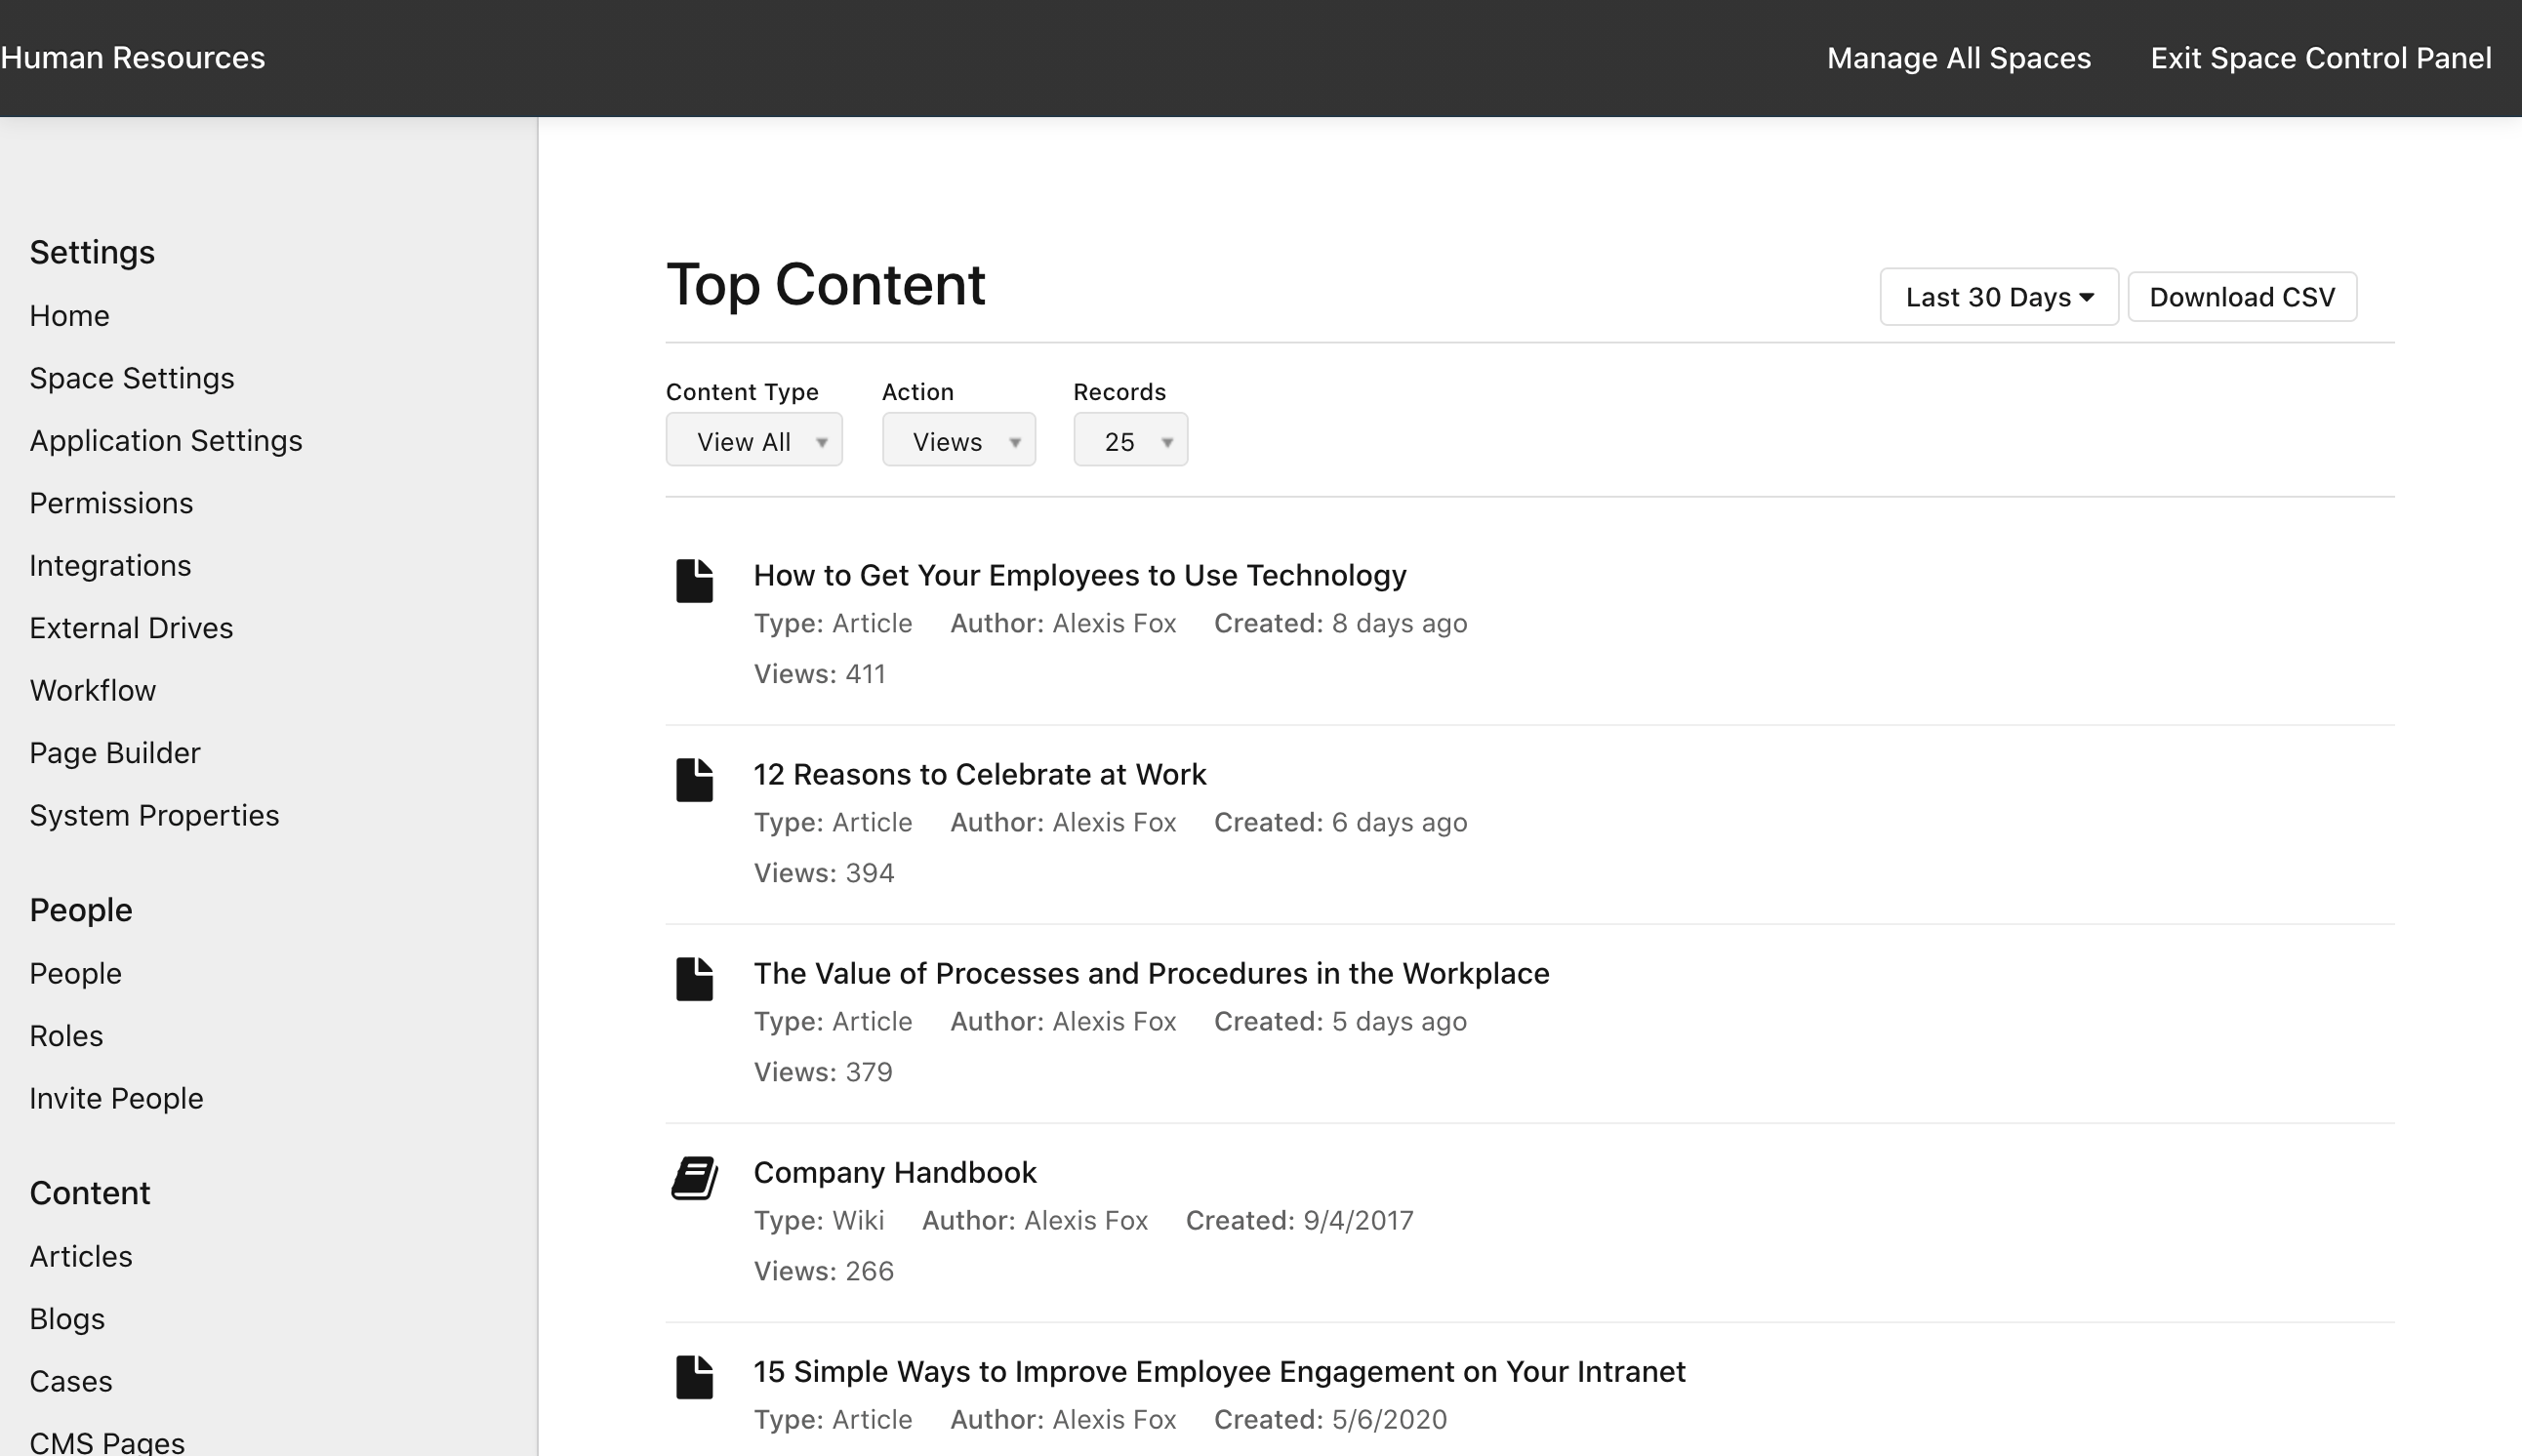 Manage Space: Top Content